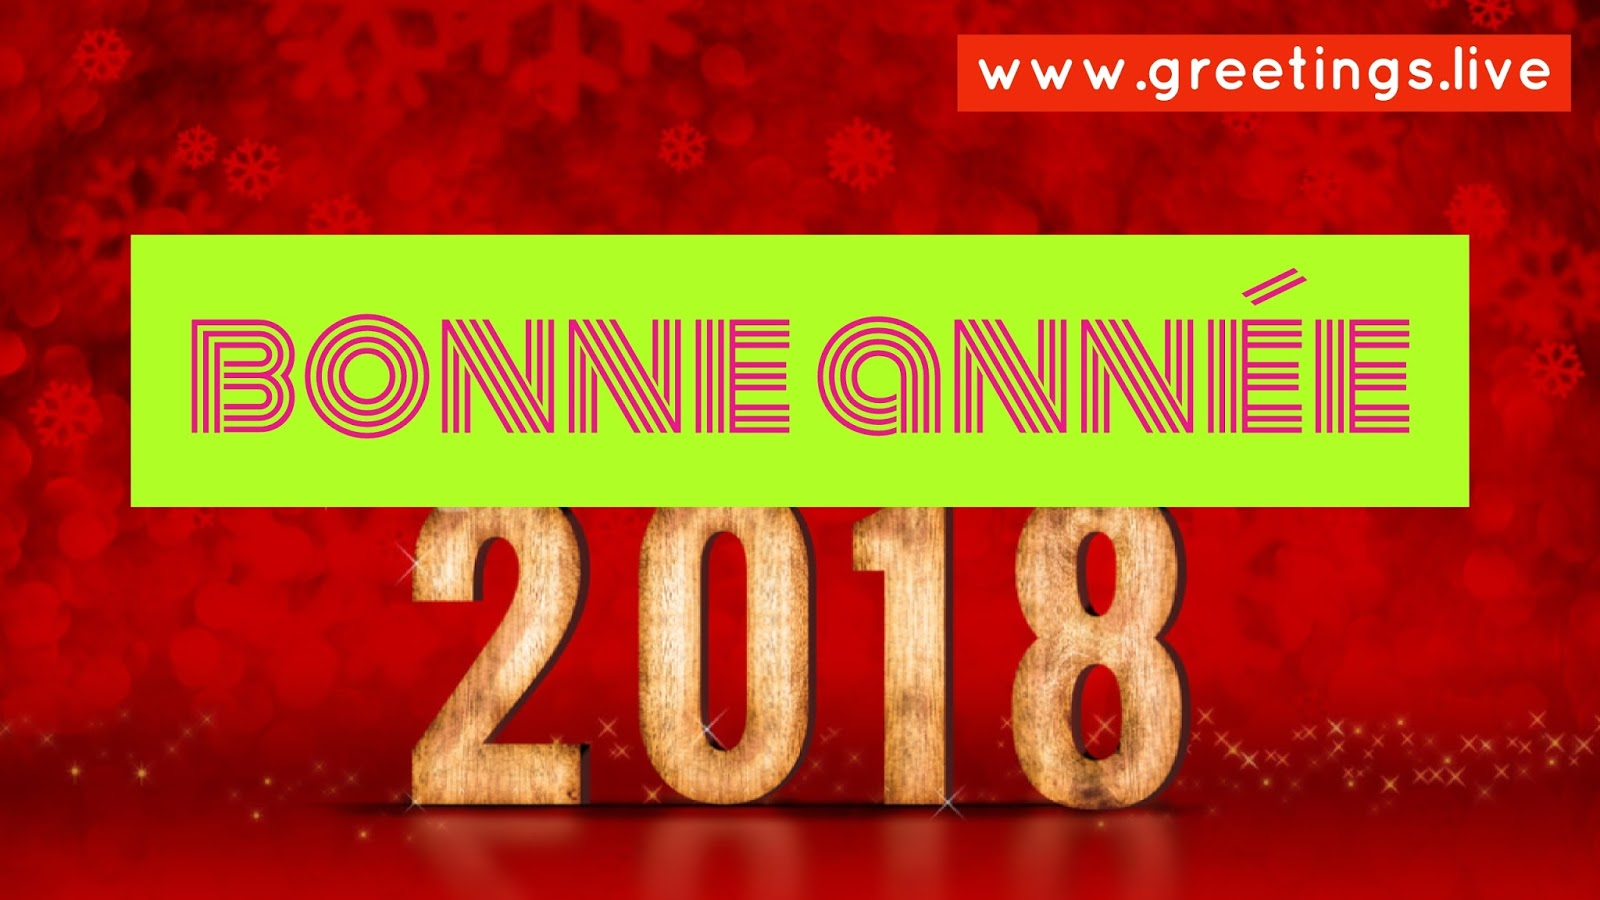 2018 New Year Wishes Greetings French Greetings On Happy New Year 2018